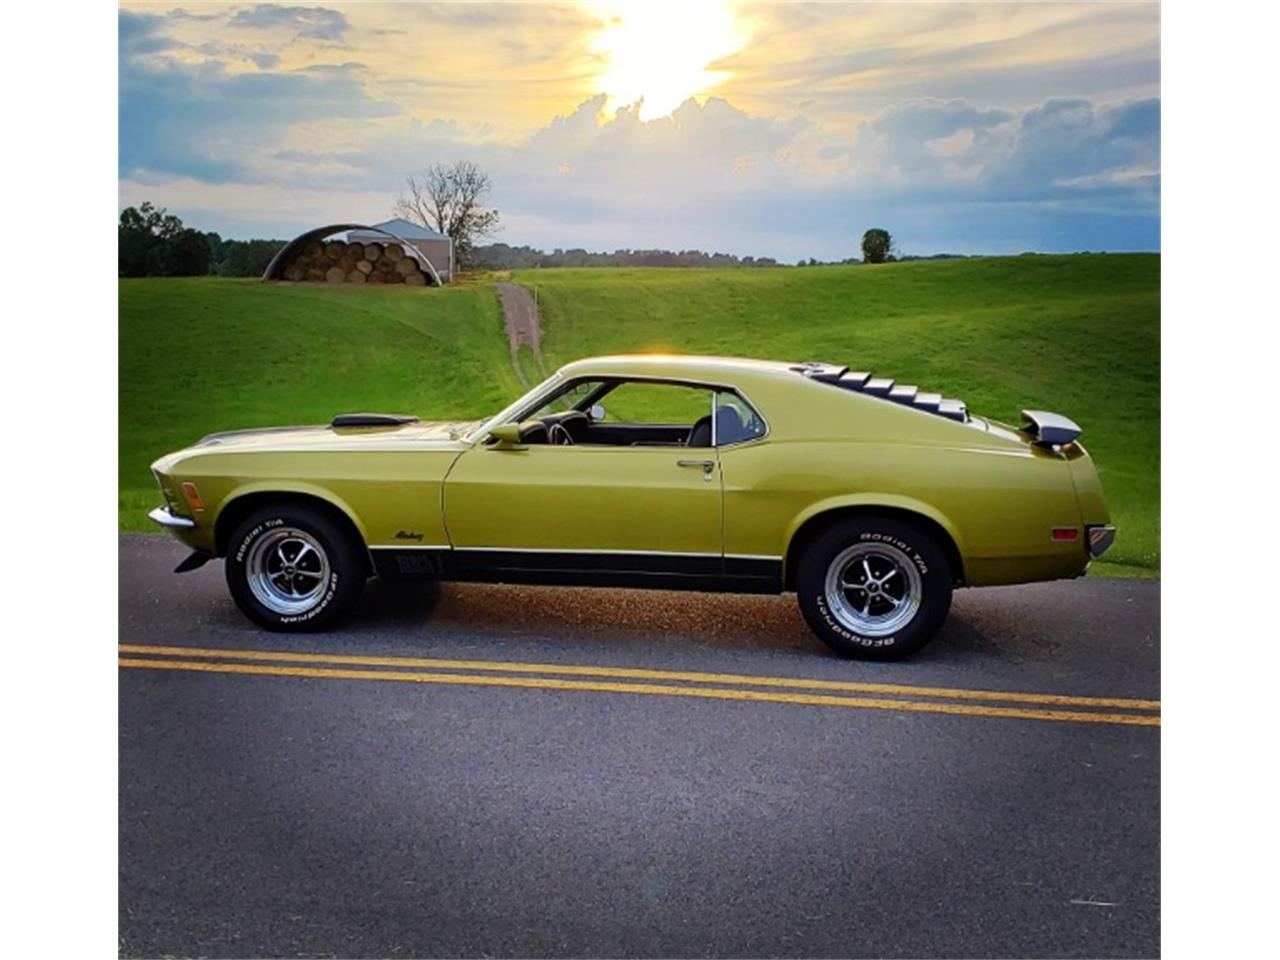 Large Picture of Classic 1970 Ford Mustang located in Mundelein Illinois - $46,500.00 - QIDR